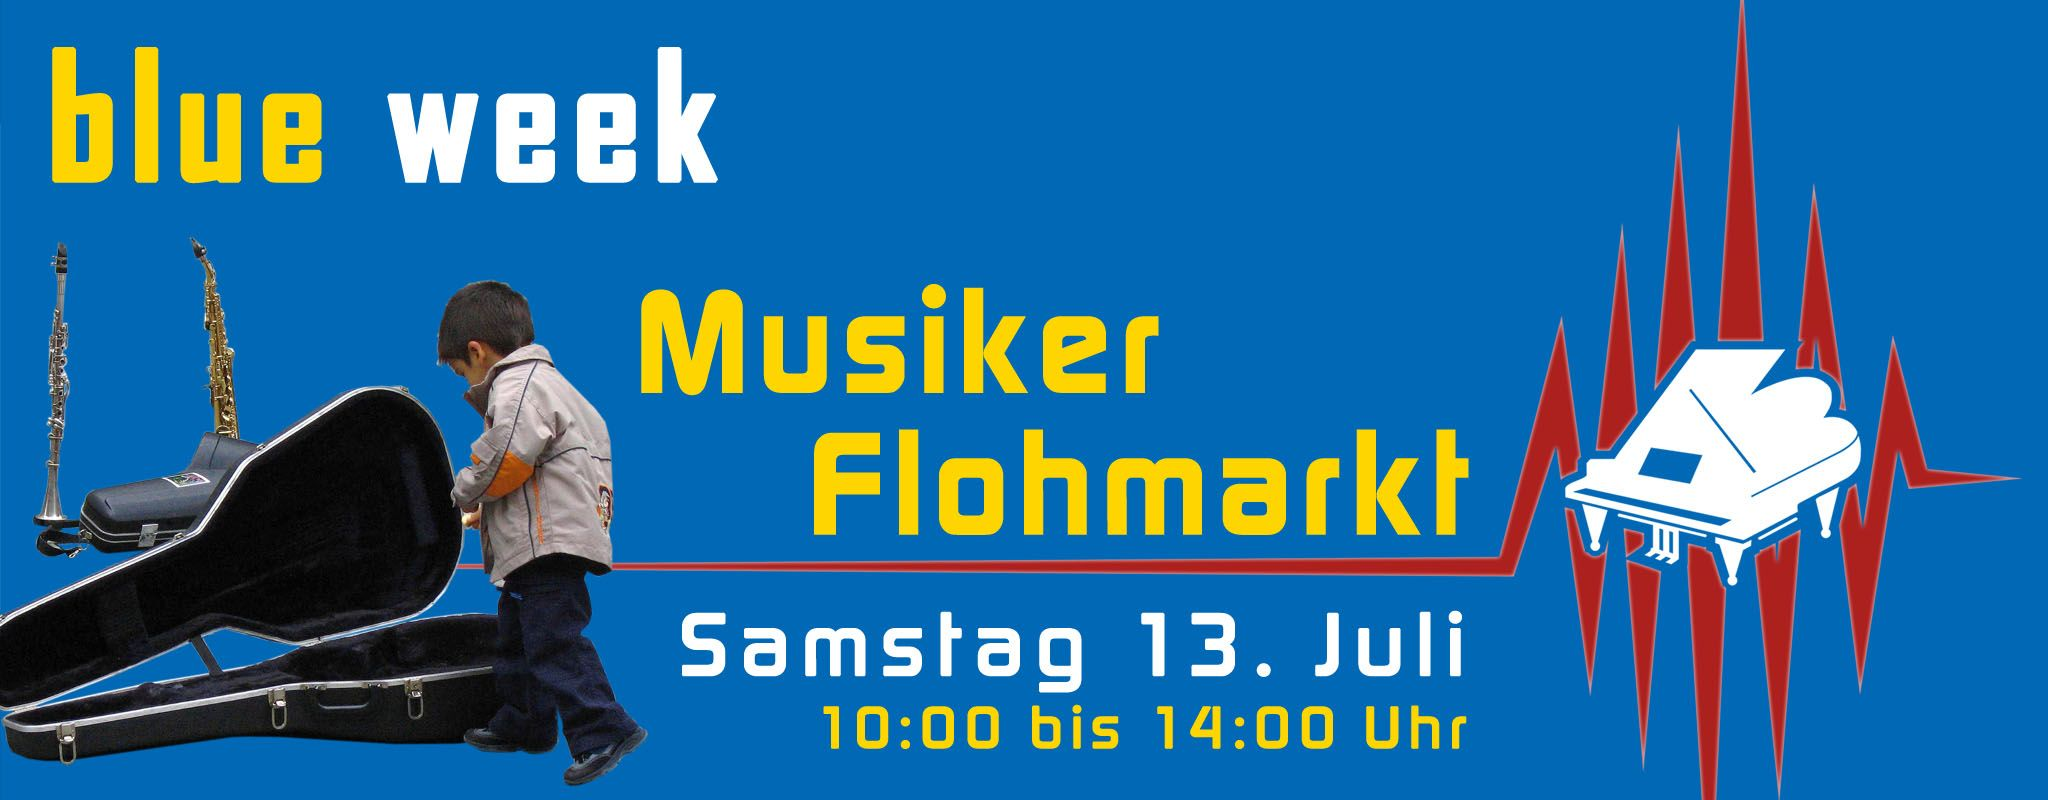 Grosser Musikerflohmarkt privat an privat